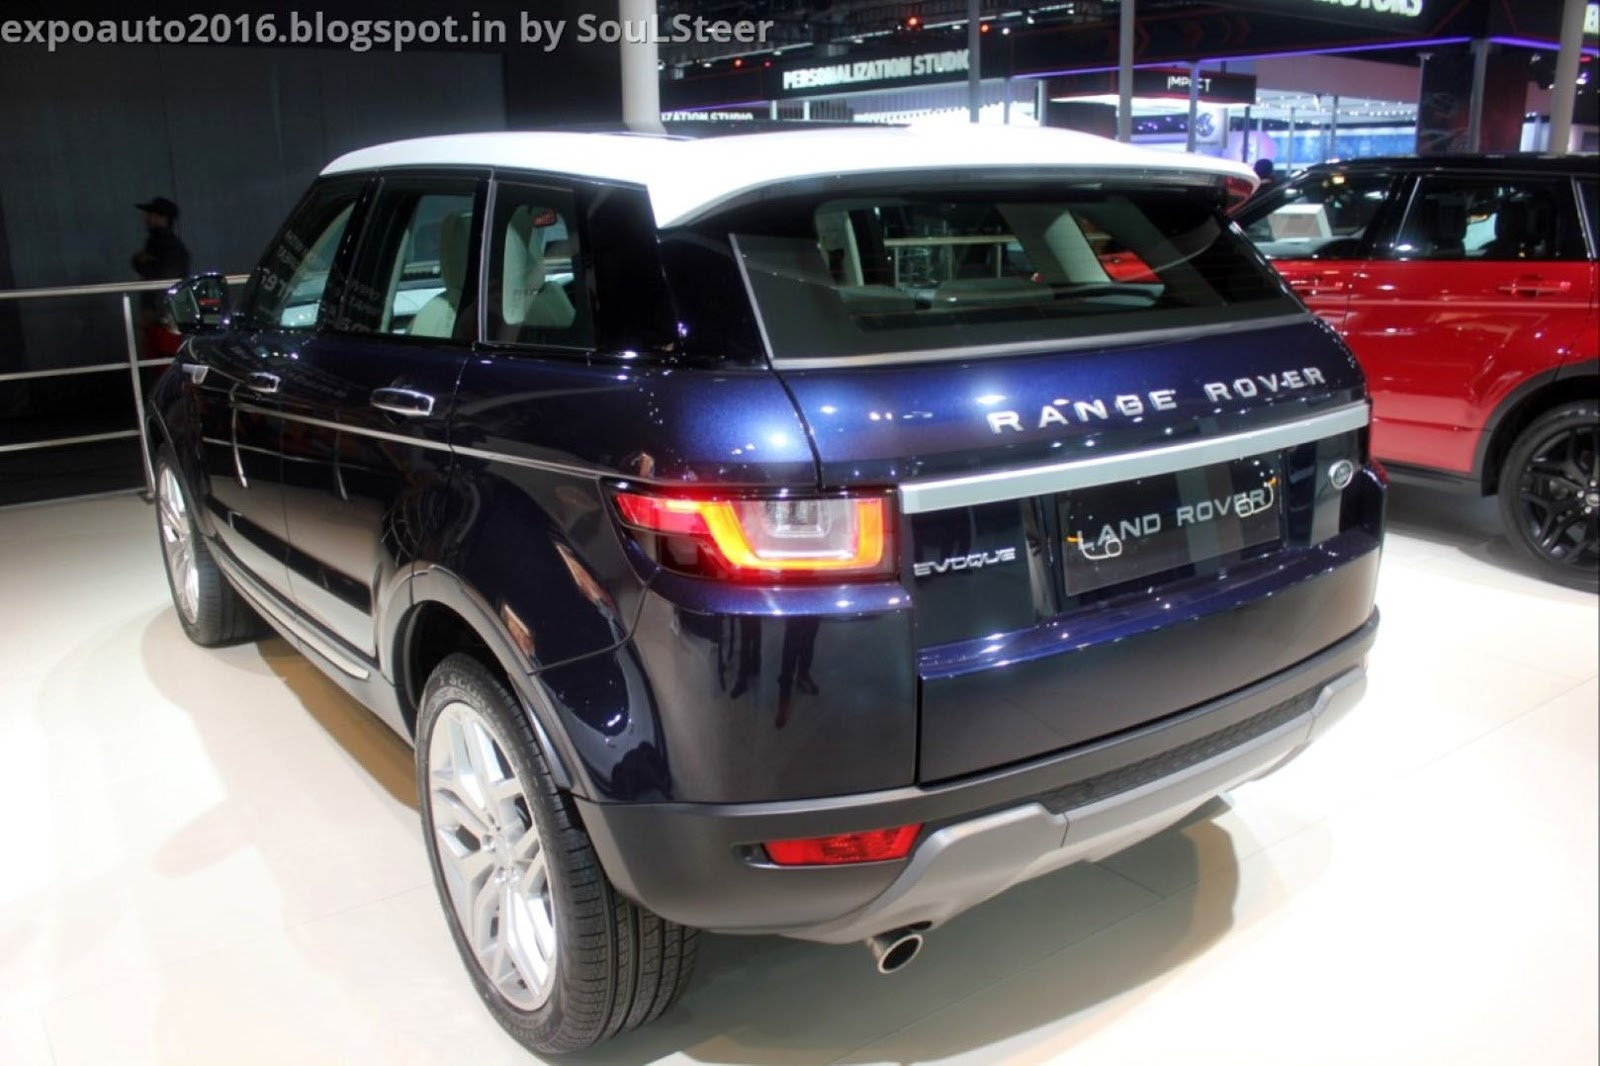 auto expo 2016 by soulsteer range rover evoque compact luxury crossover suv in blue and red. Black Bedroom Furniture Sets. Home Design Ideas